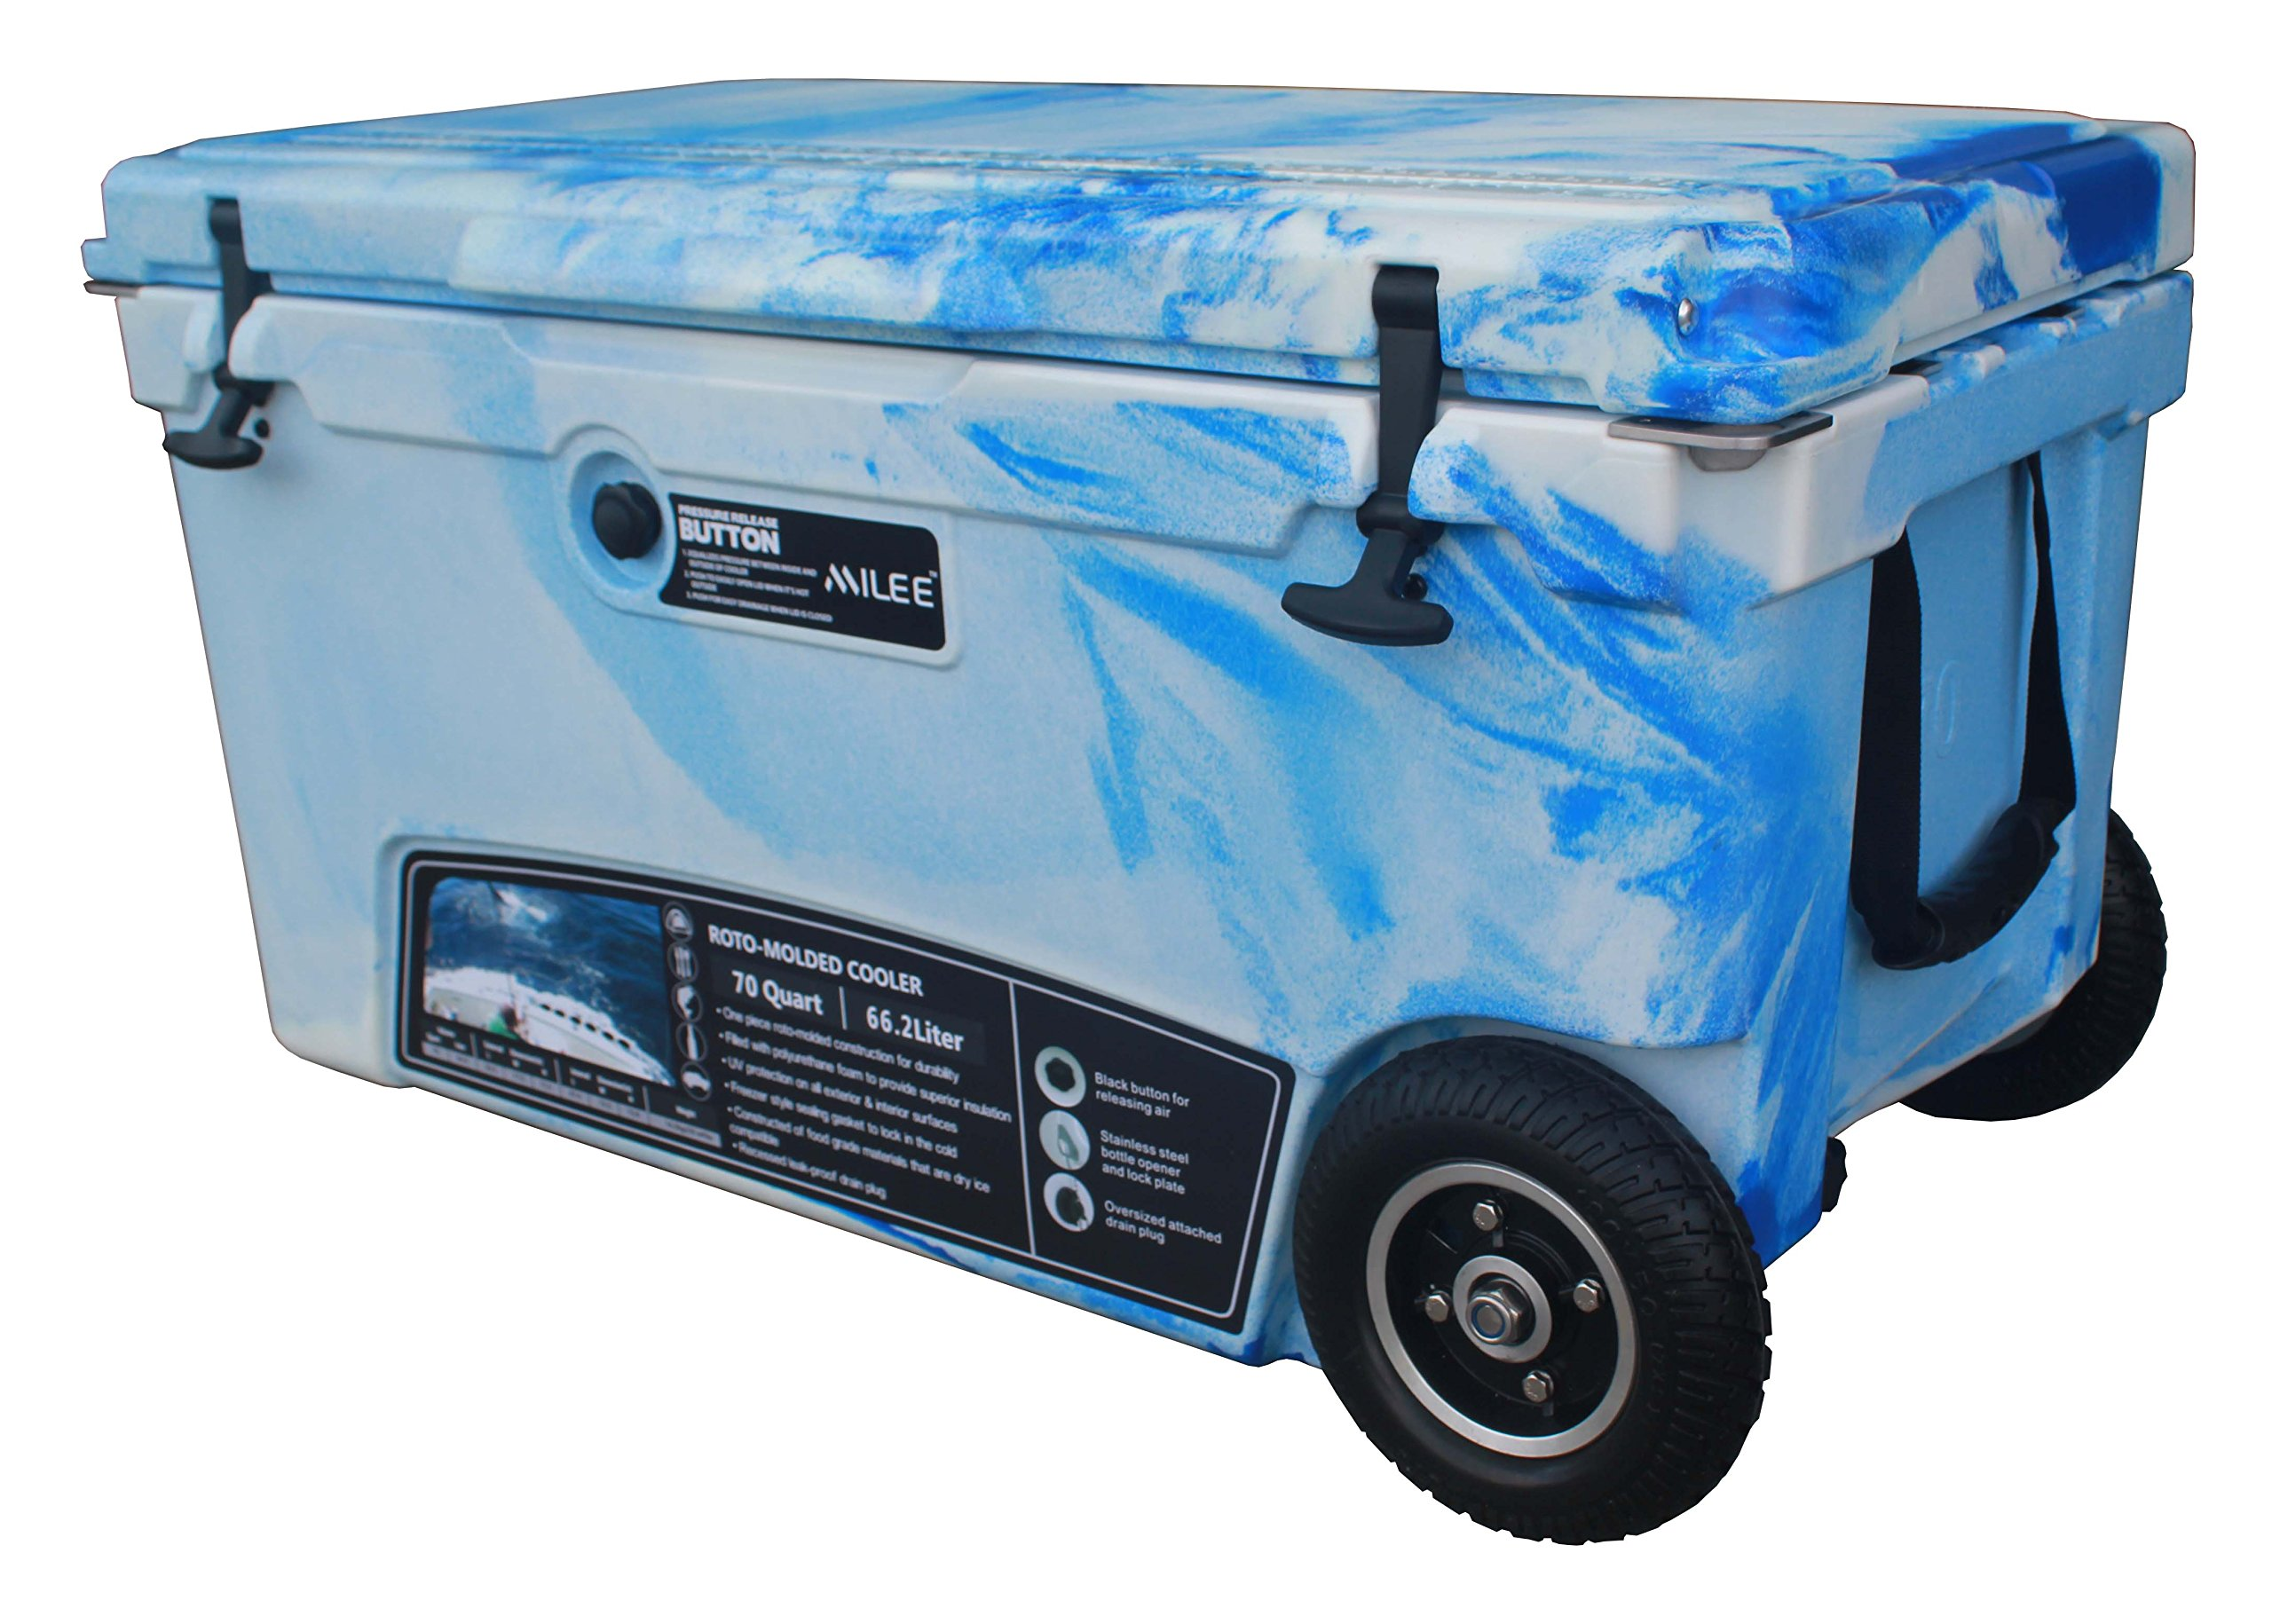 MILEE--Wheeled Cooler 70QT (Marine CAMO) Included Divider, Basket and Cup holder free. by MILEE